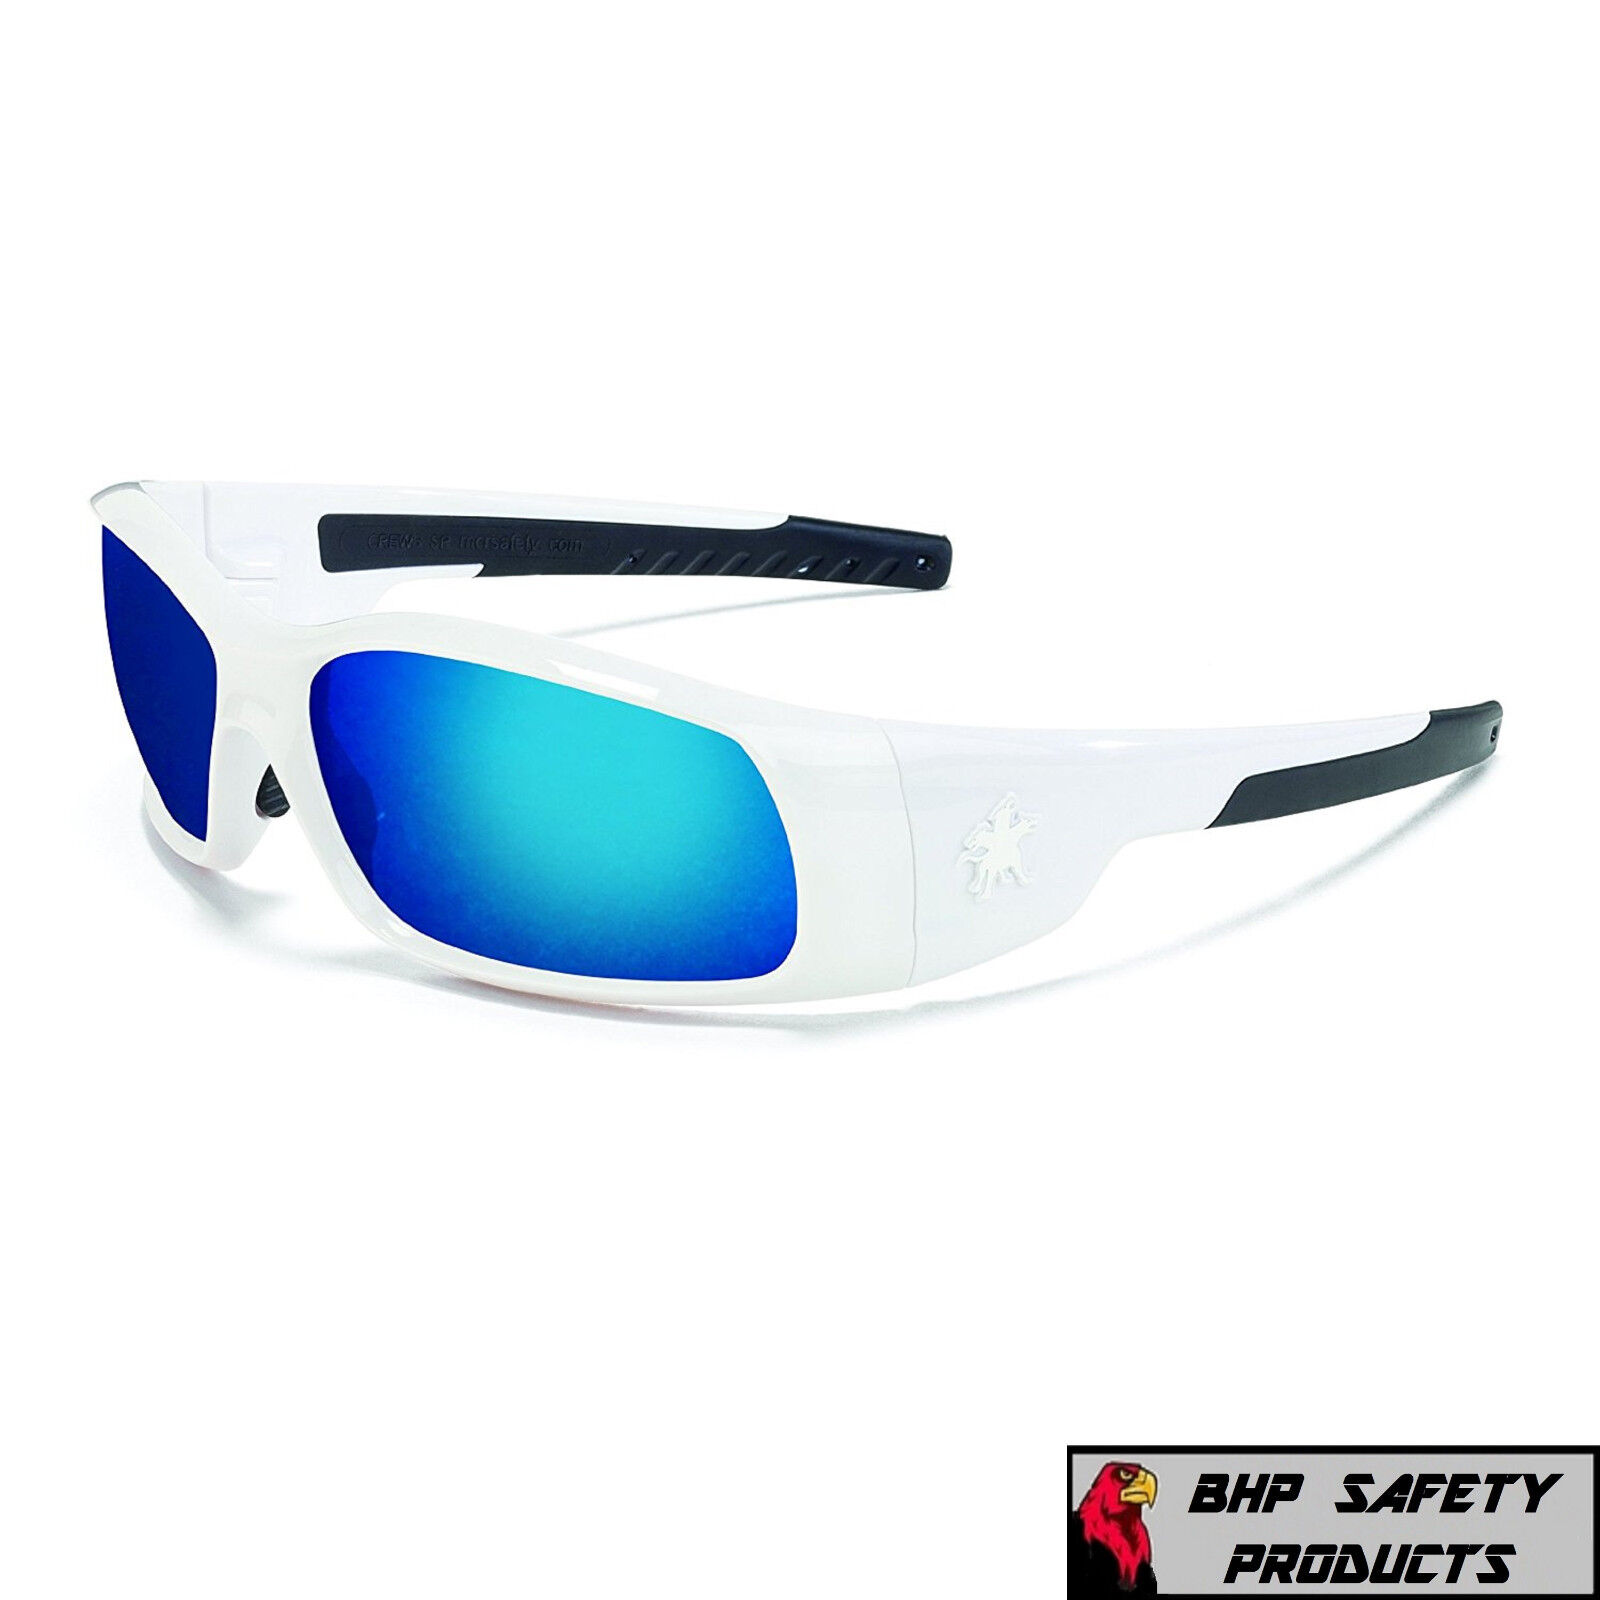 dc3201a1bd1 Crews Swagger White Frame Blue Mirror Lens Safety Glasses Sunglasses ...